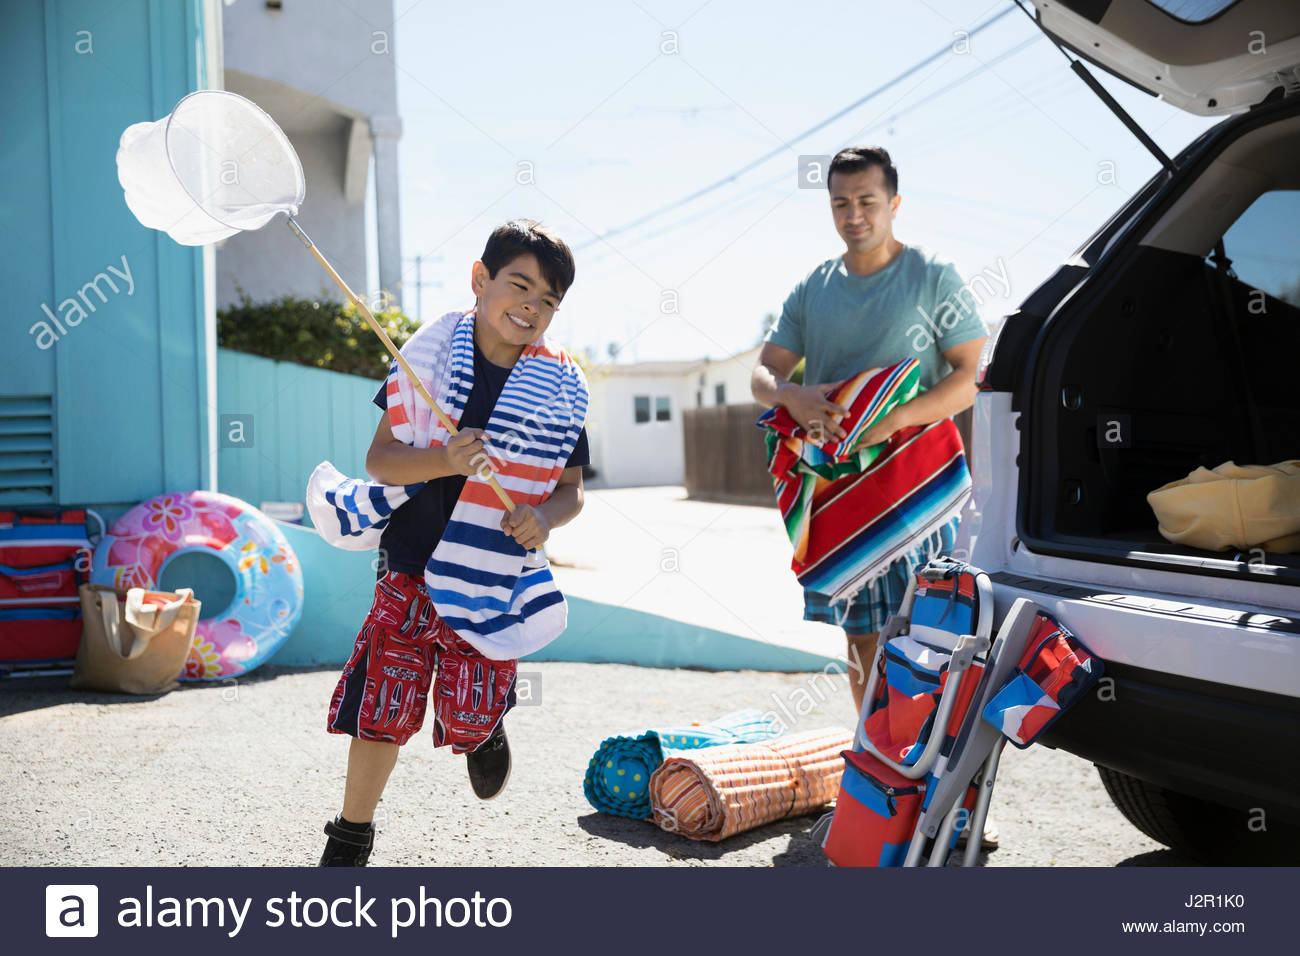 Father and son loading car for beach trip in sunny driveway Stock Photo